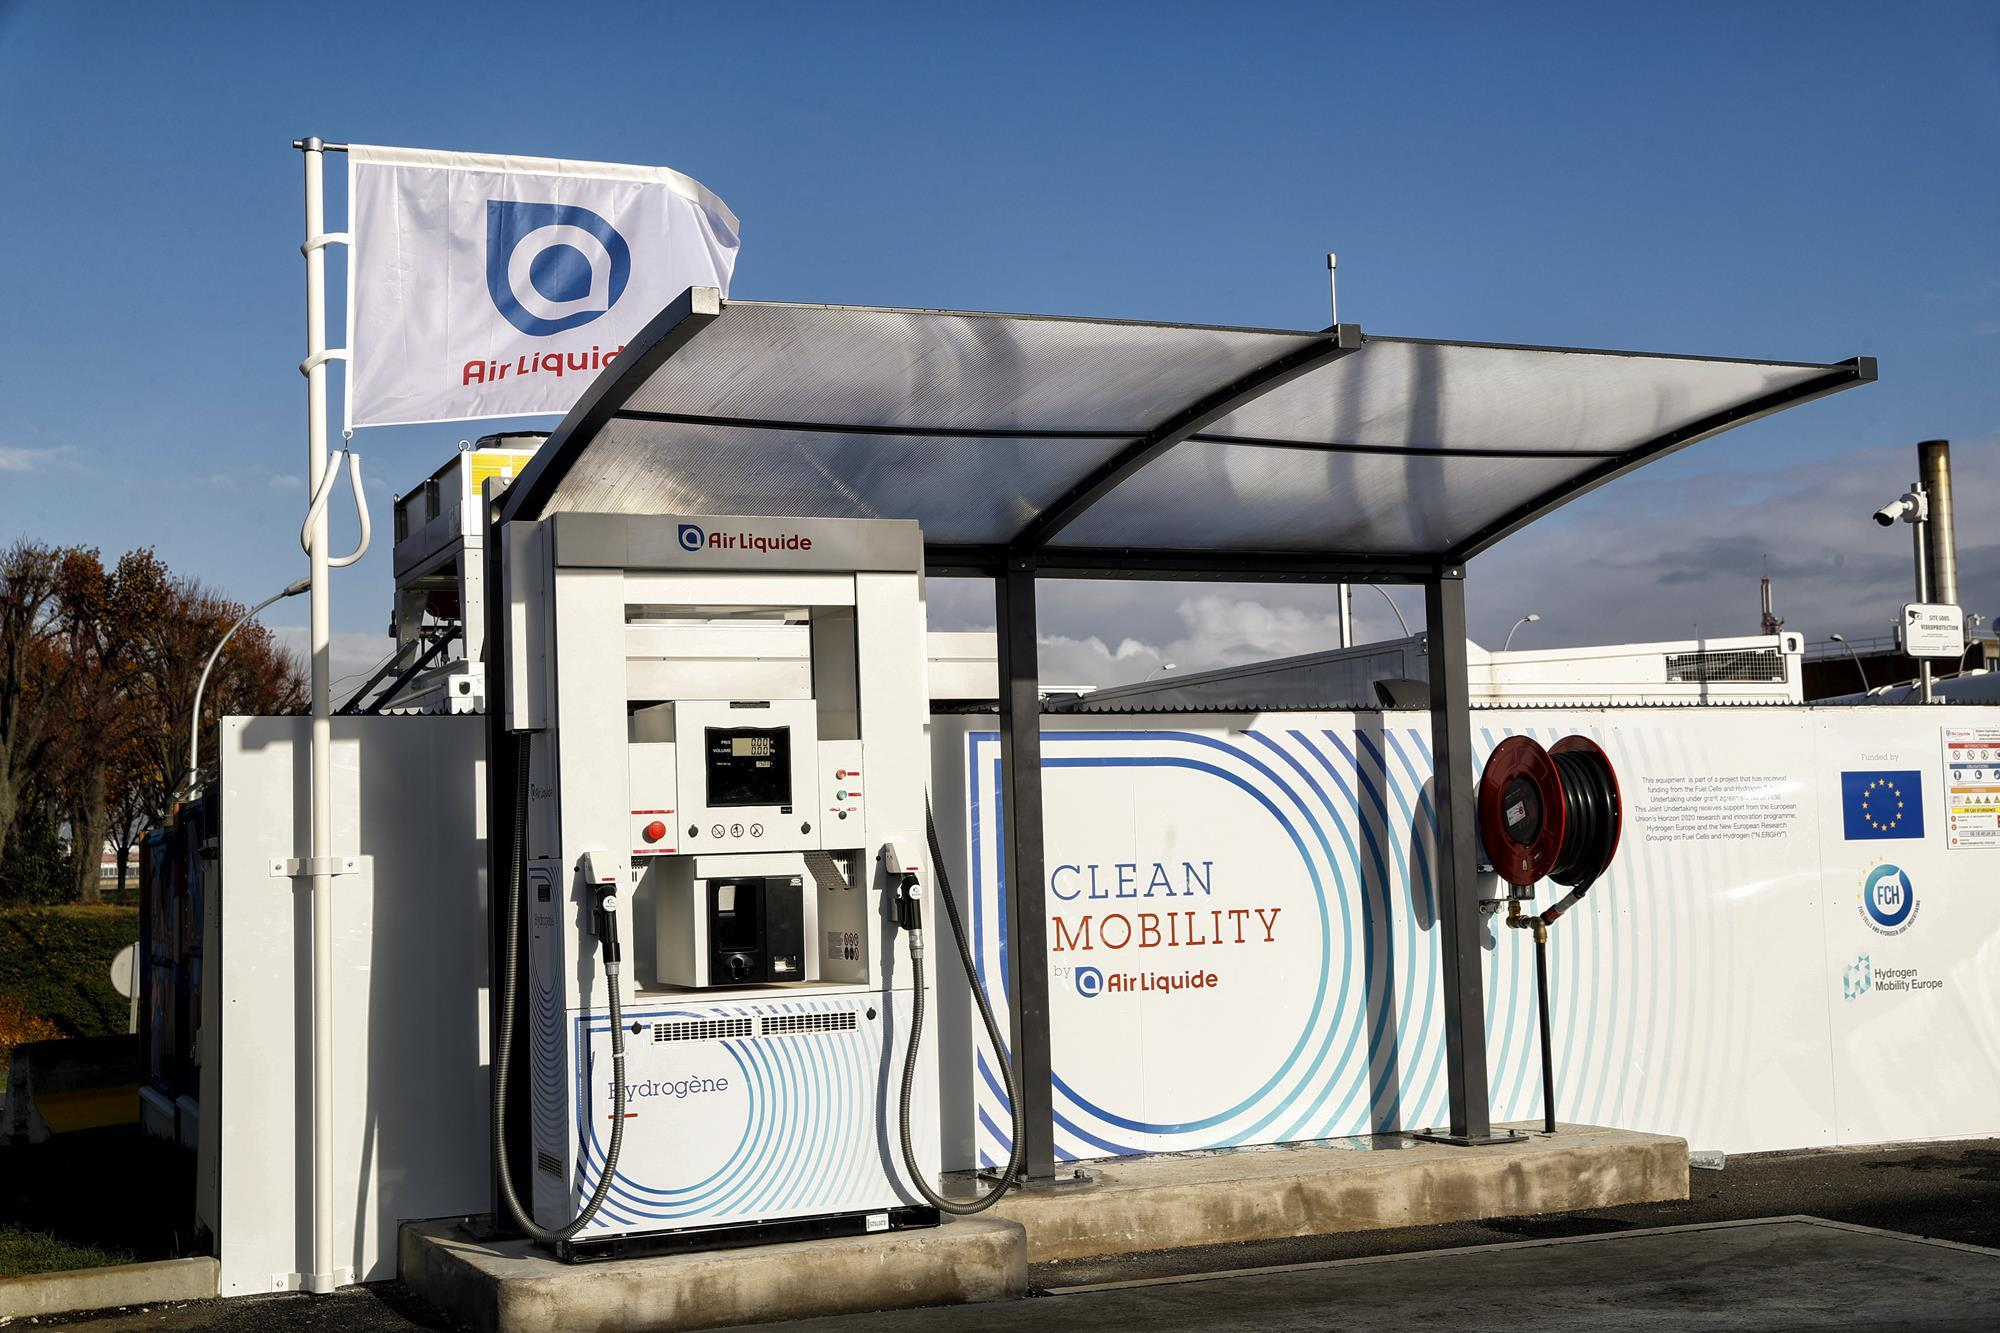 air liquide and groupe adp open first hydrogen station at paris orly airport news gasworld. Black Bedroom Furniture Sets. Home Design Ideas